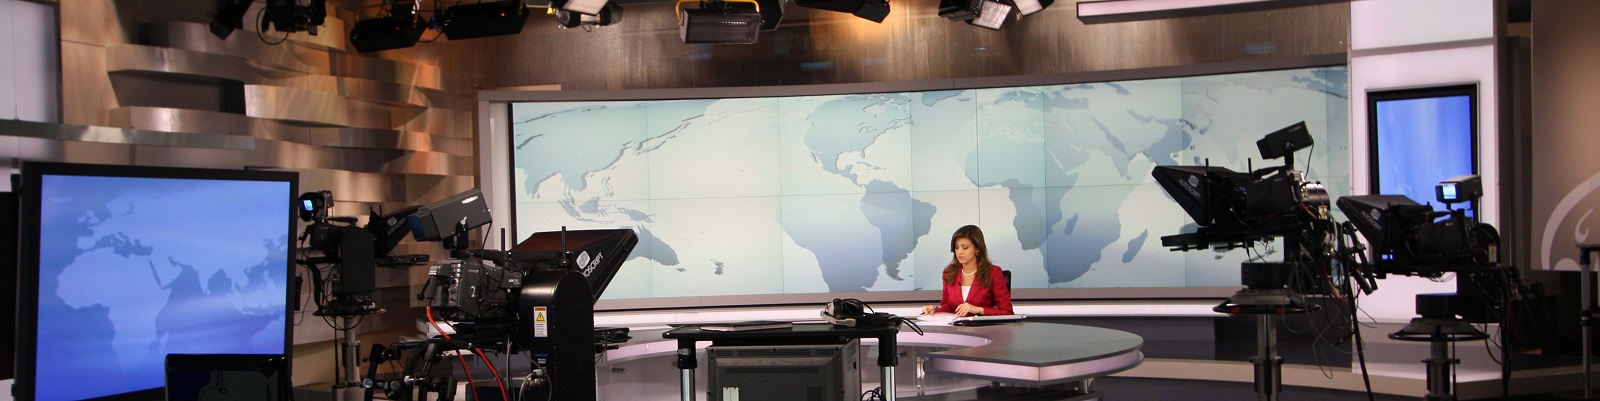 Al Jazeera studio in Doha, Qatar (Photo: Getty Images)